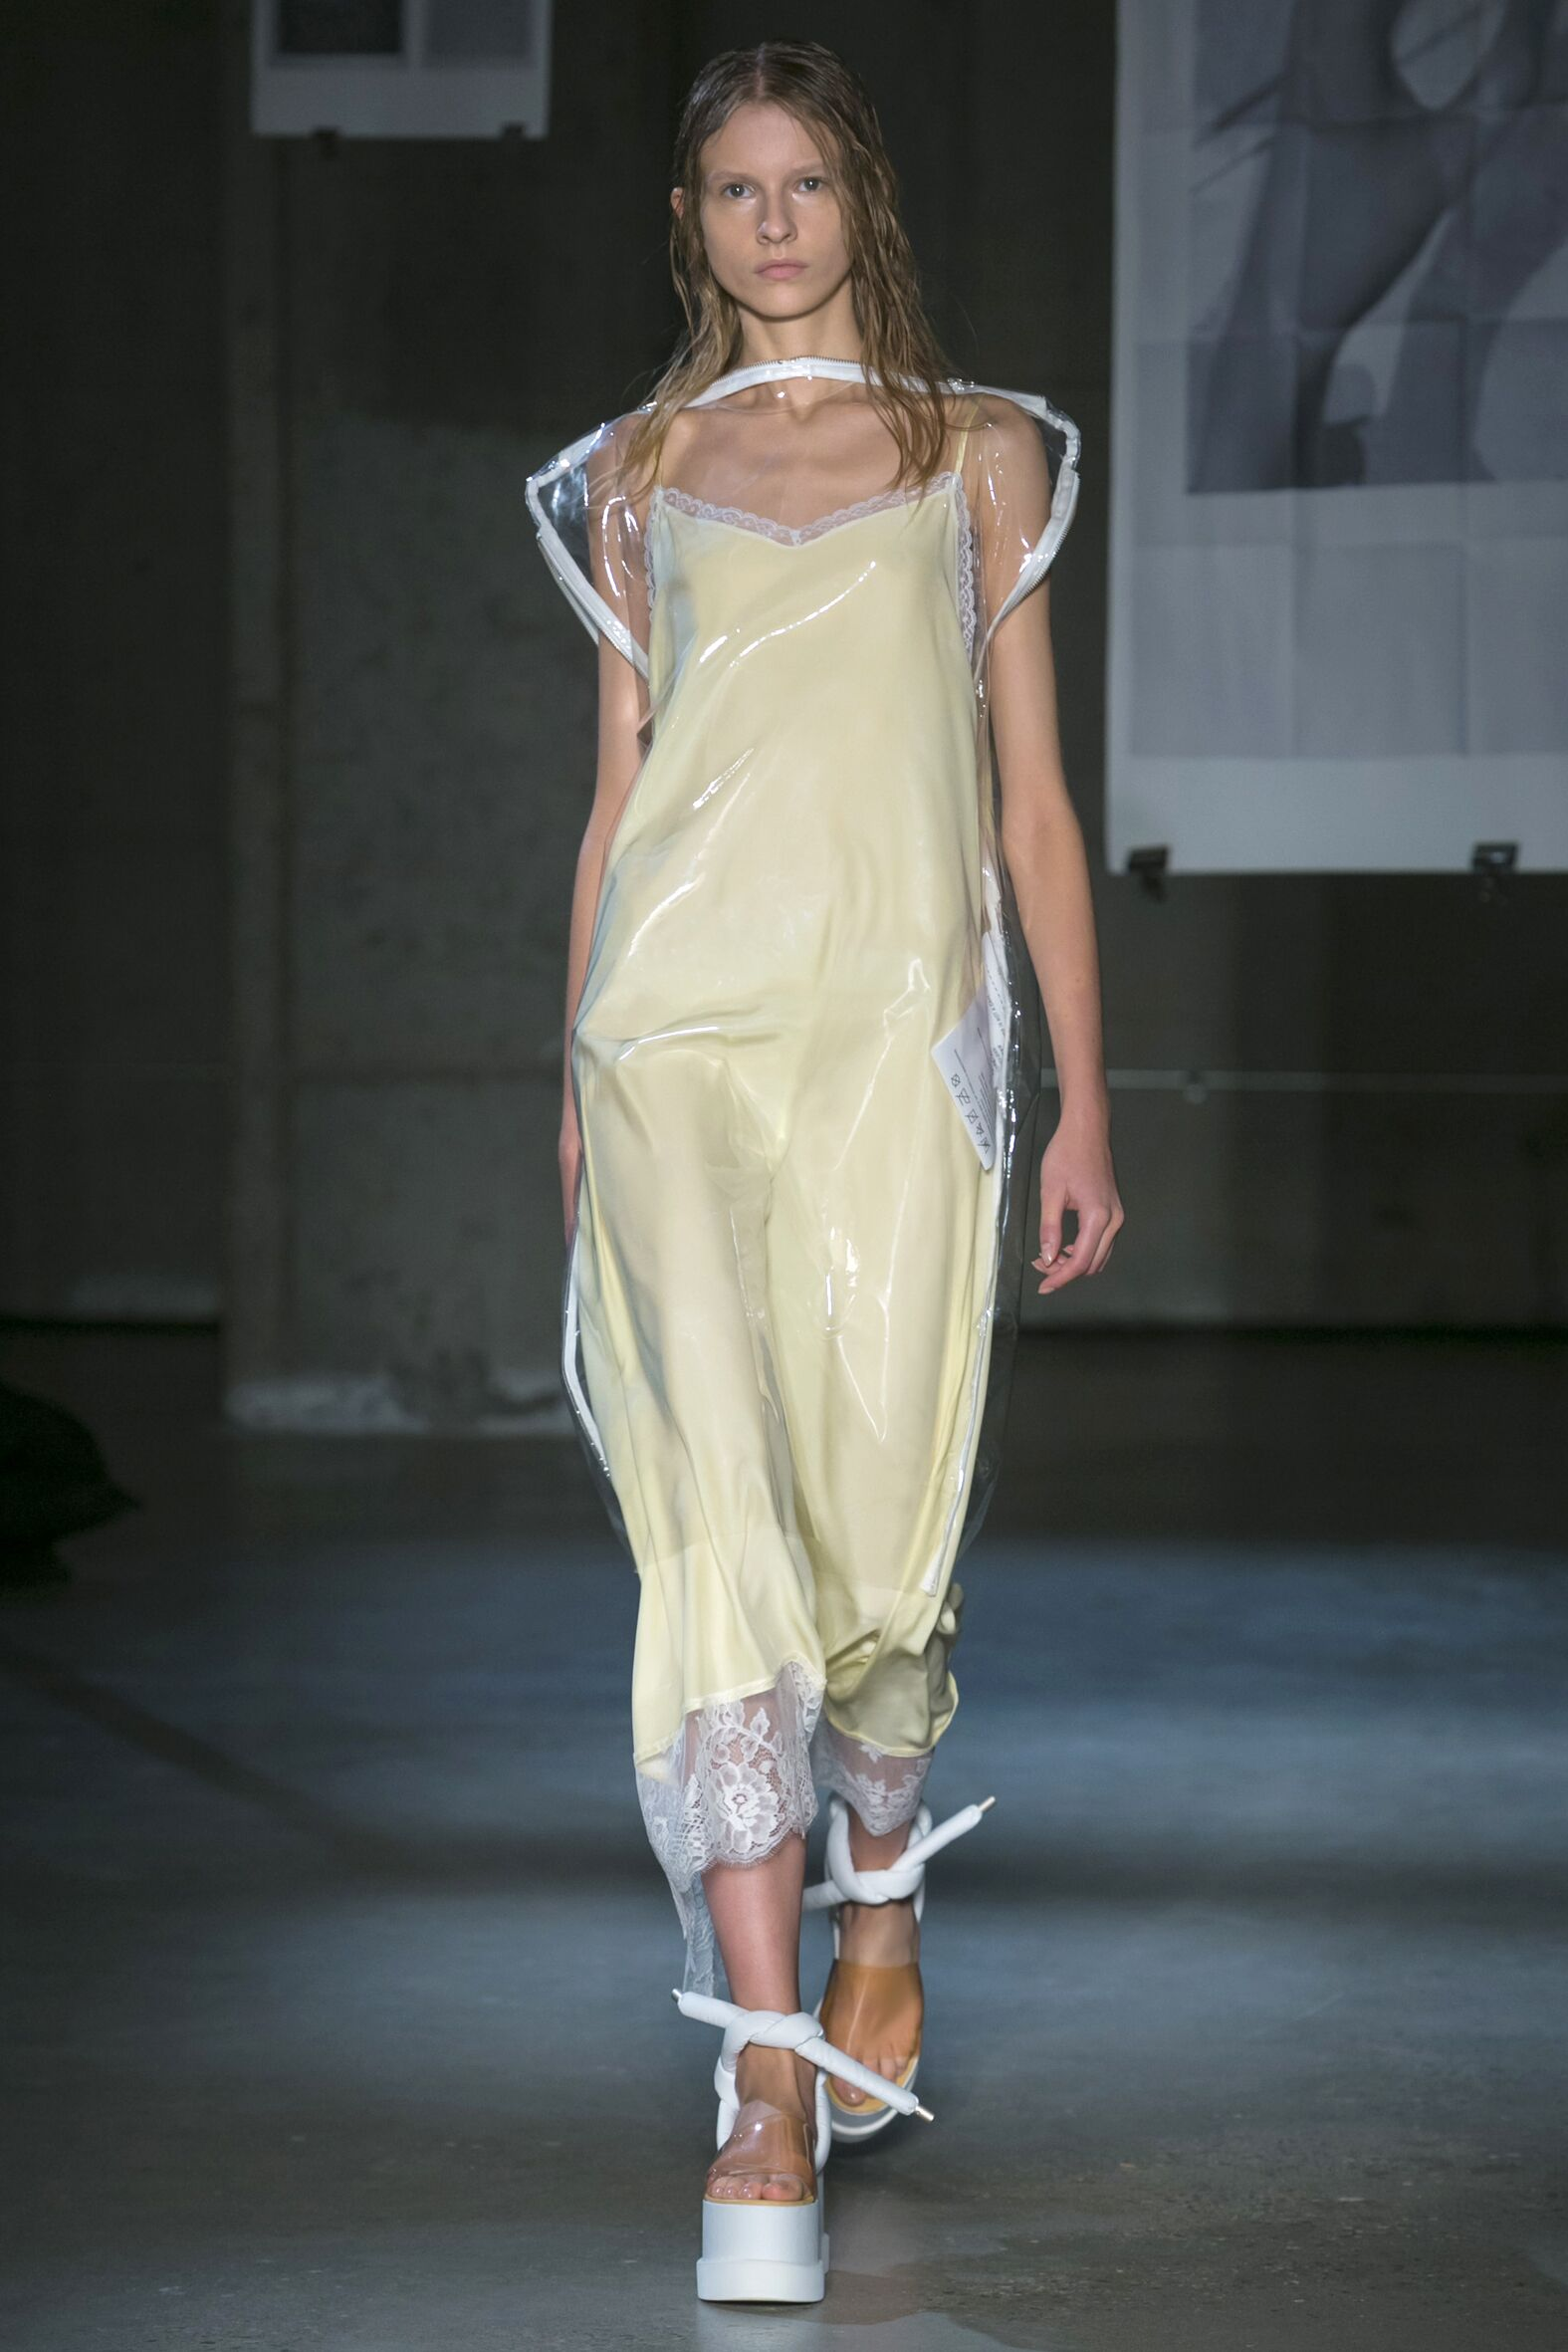 Spring 2015 Woman Fashion Show MM6 Maison Martin Margiela